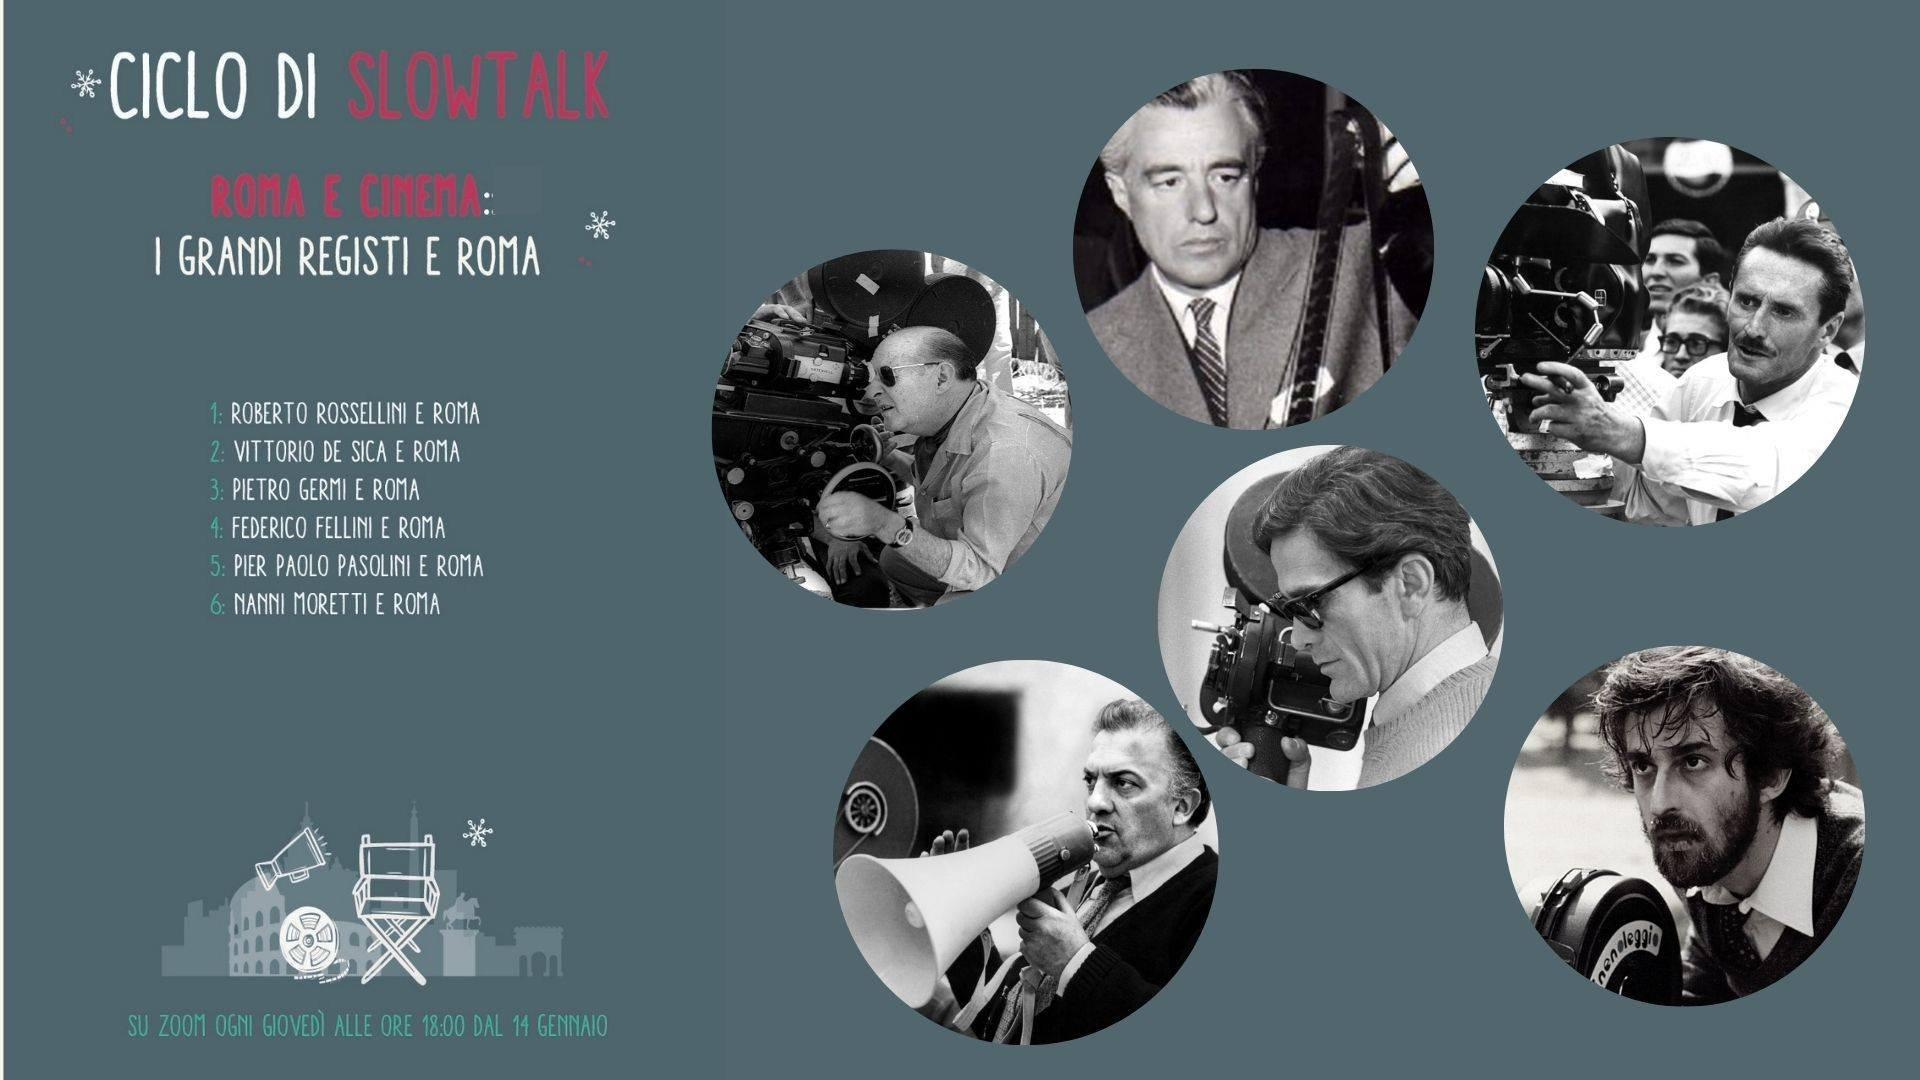 The great directors in Rome - Slowtalk cycle